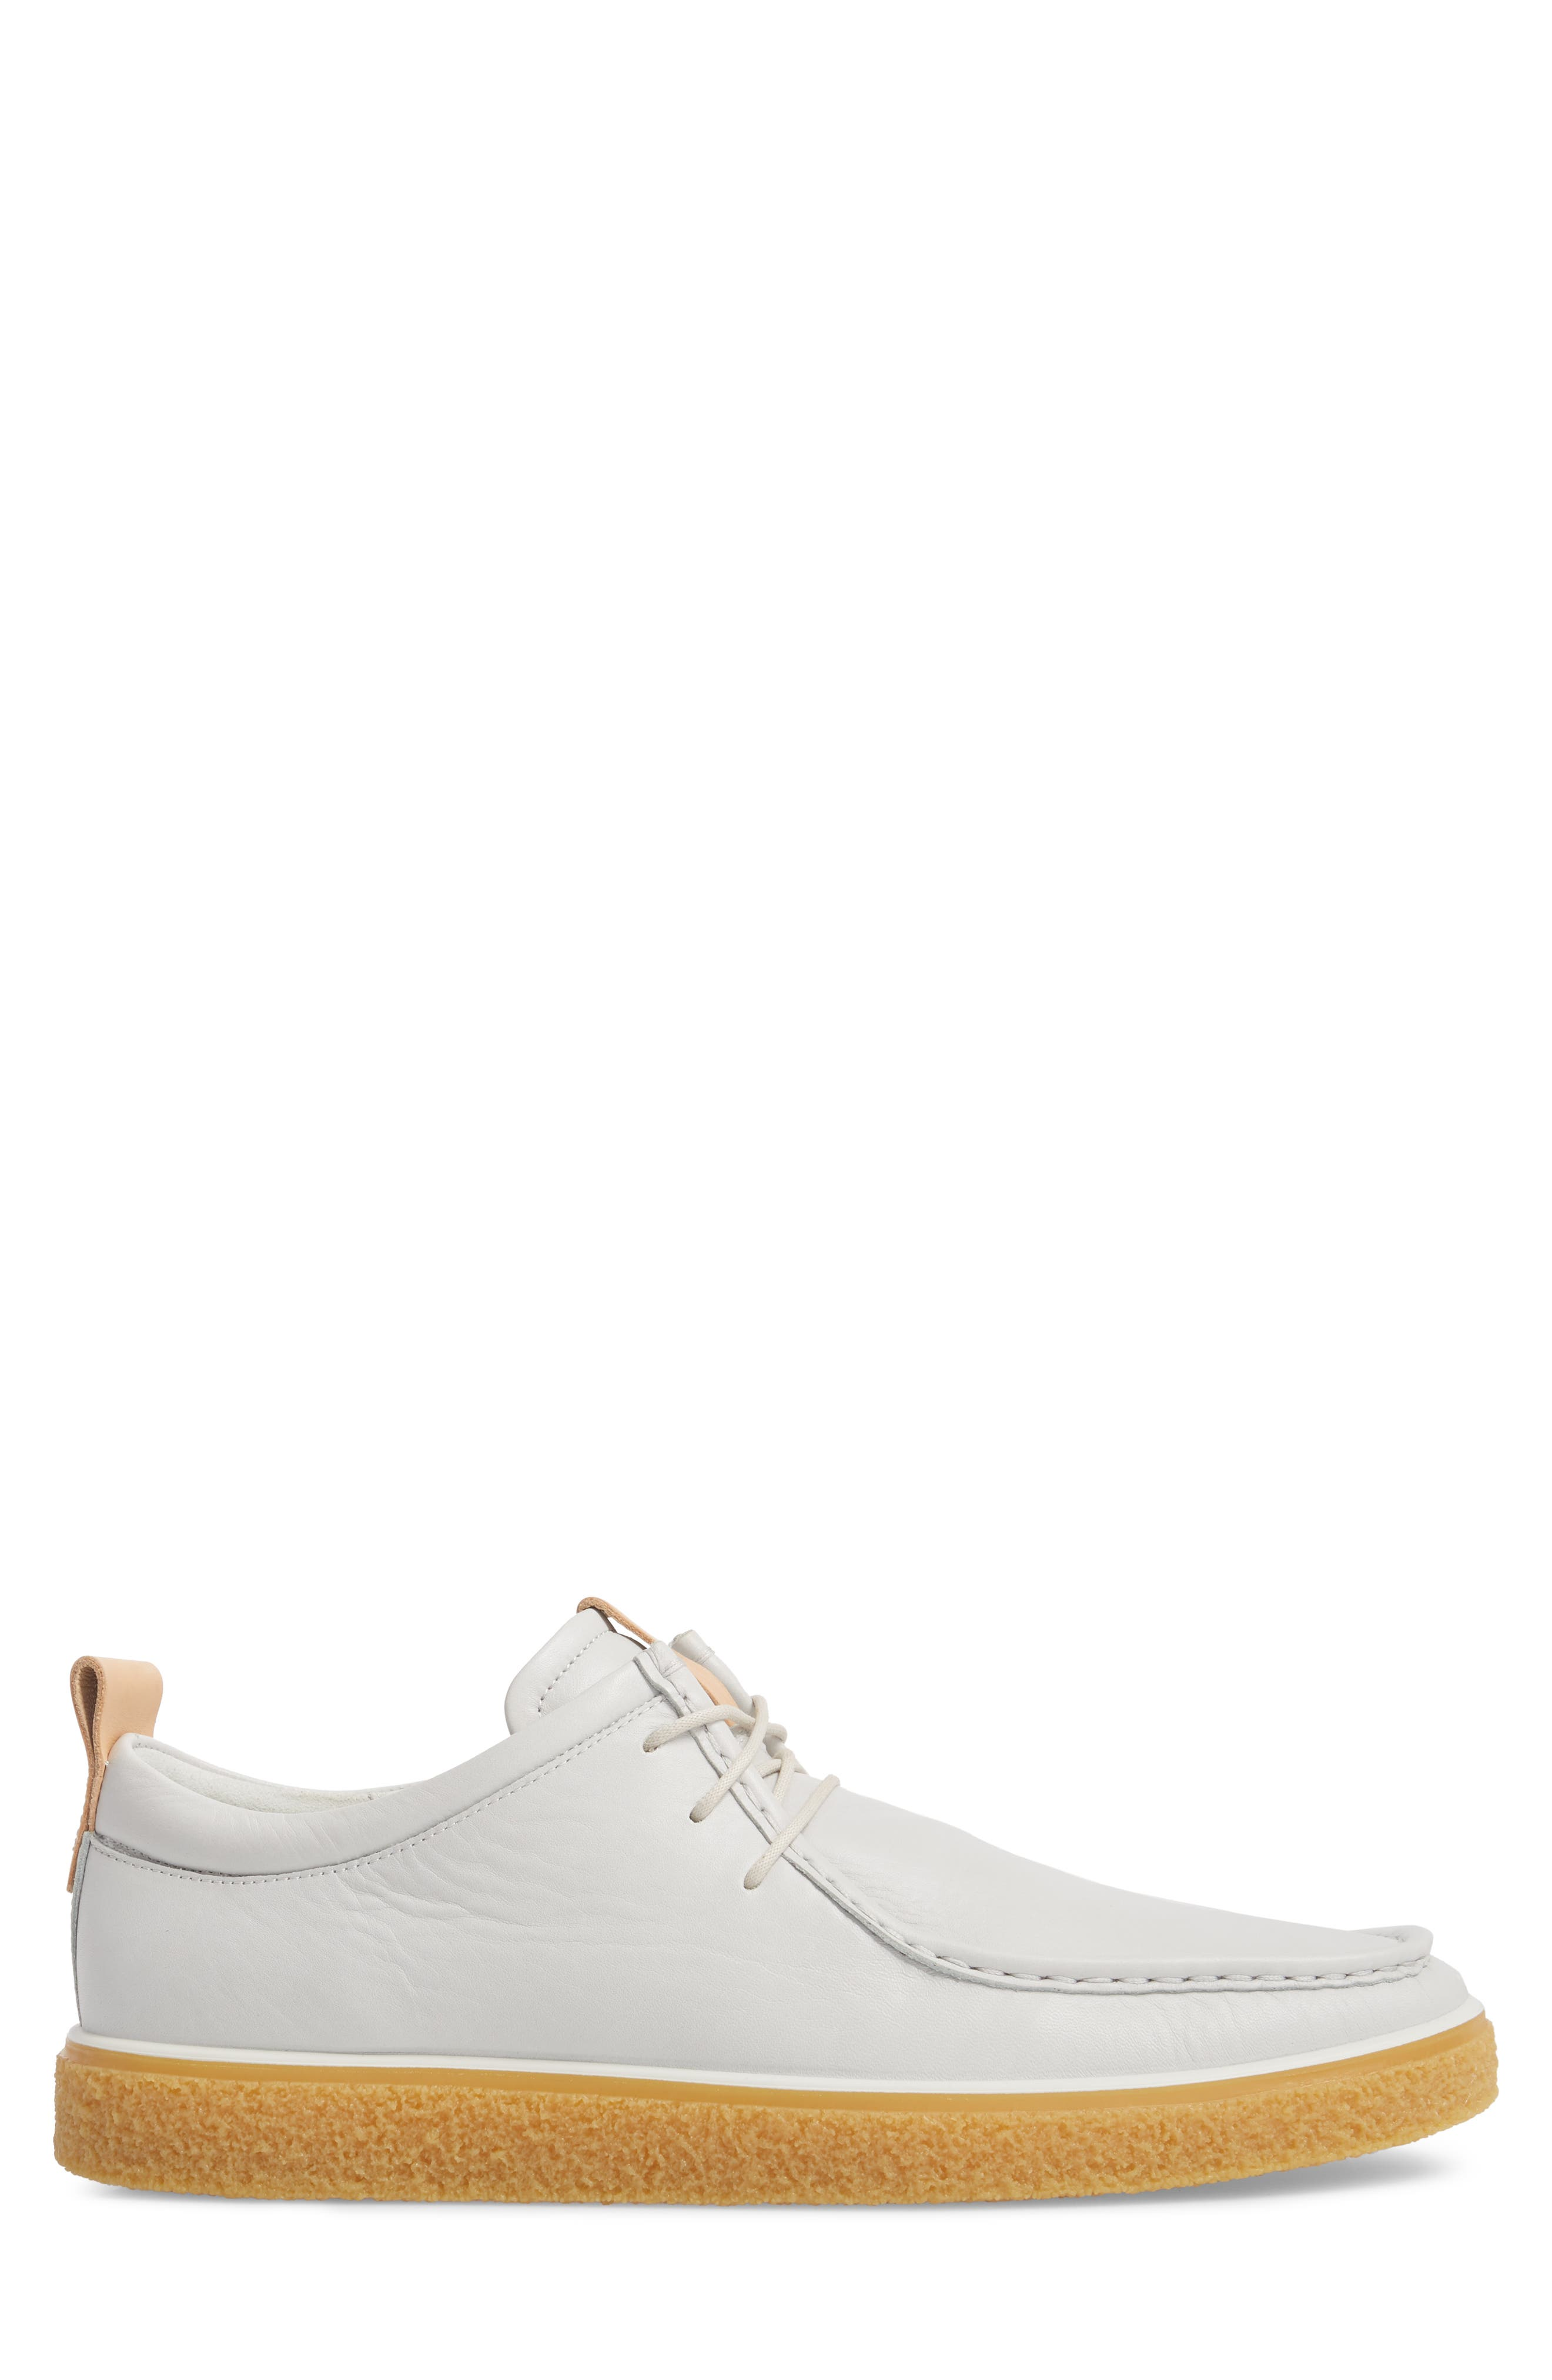 Crepetray Moc Toe Low Chukka Boot,                             Alternate thumbnail 3, color,                             Off White Leather